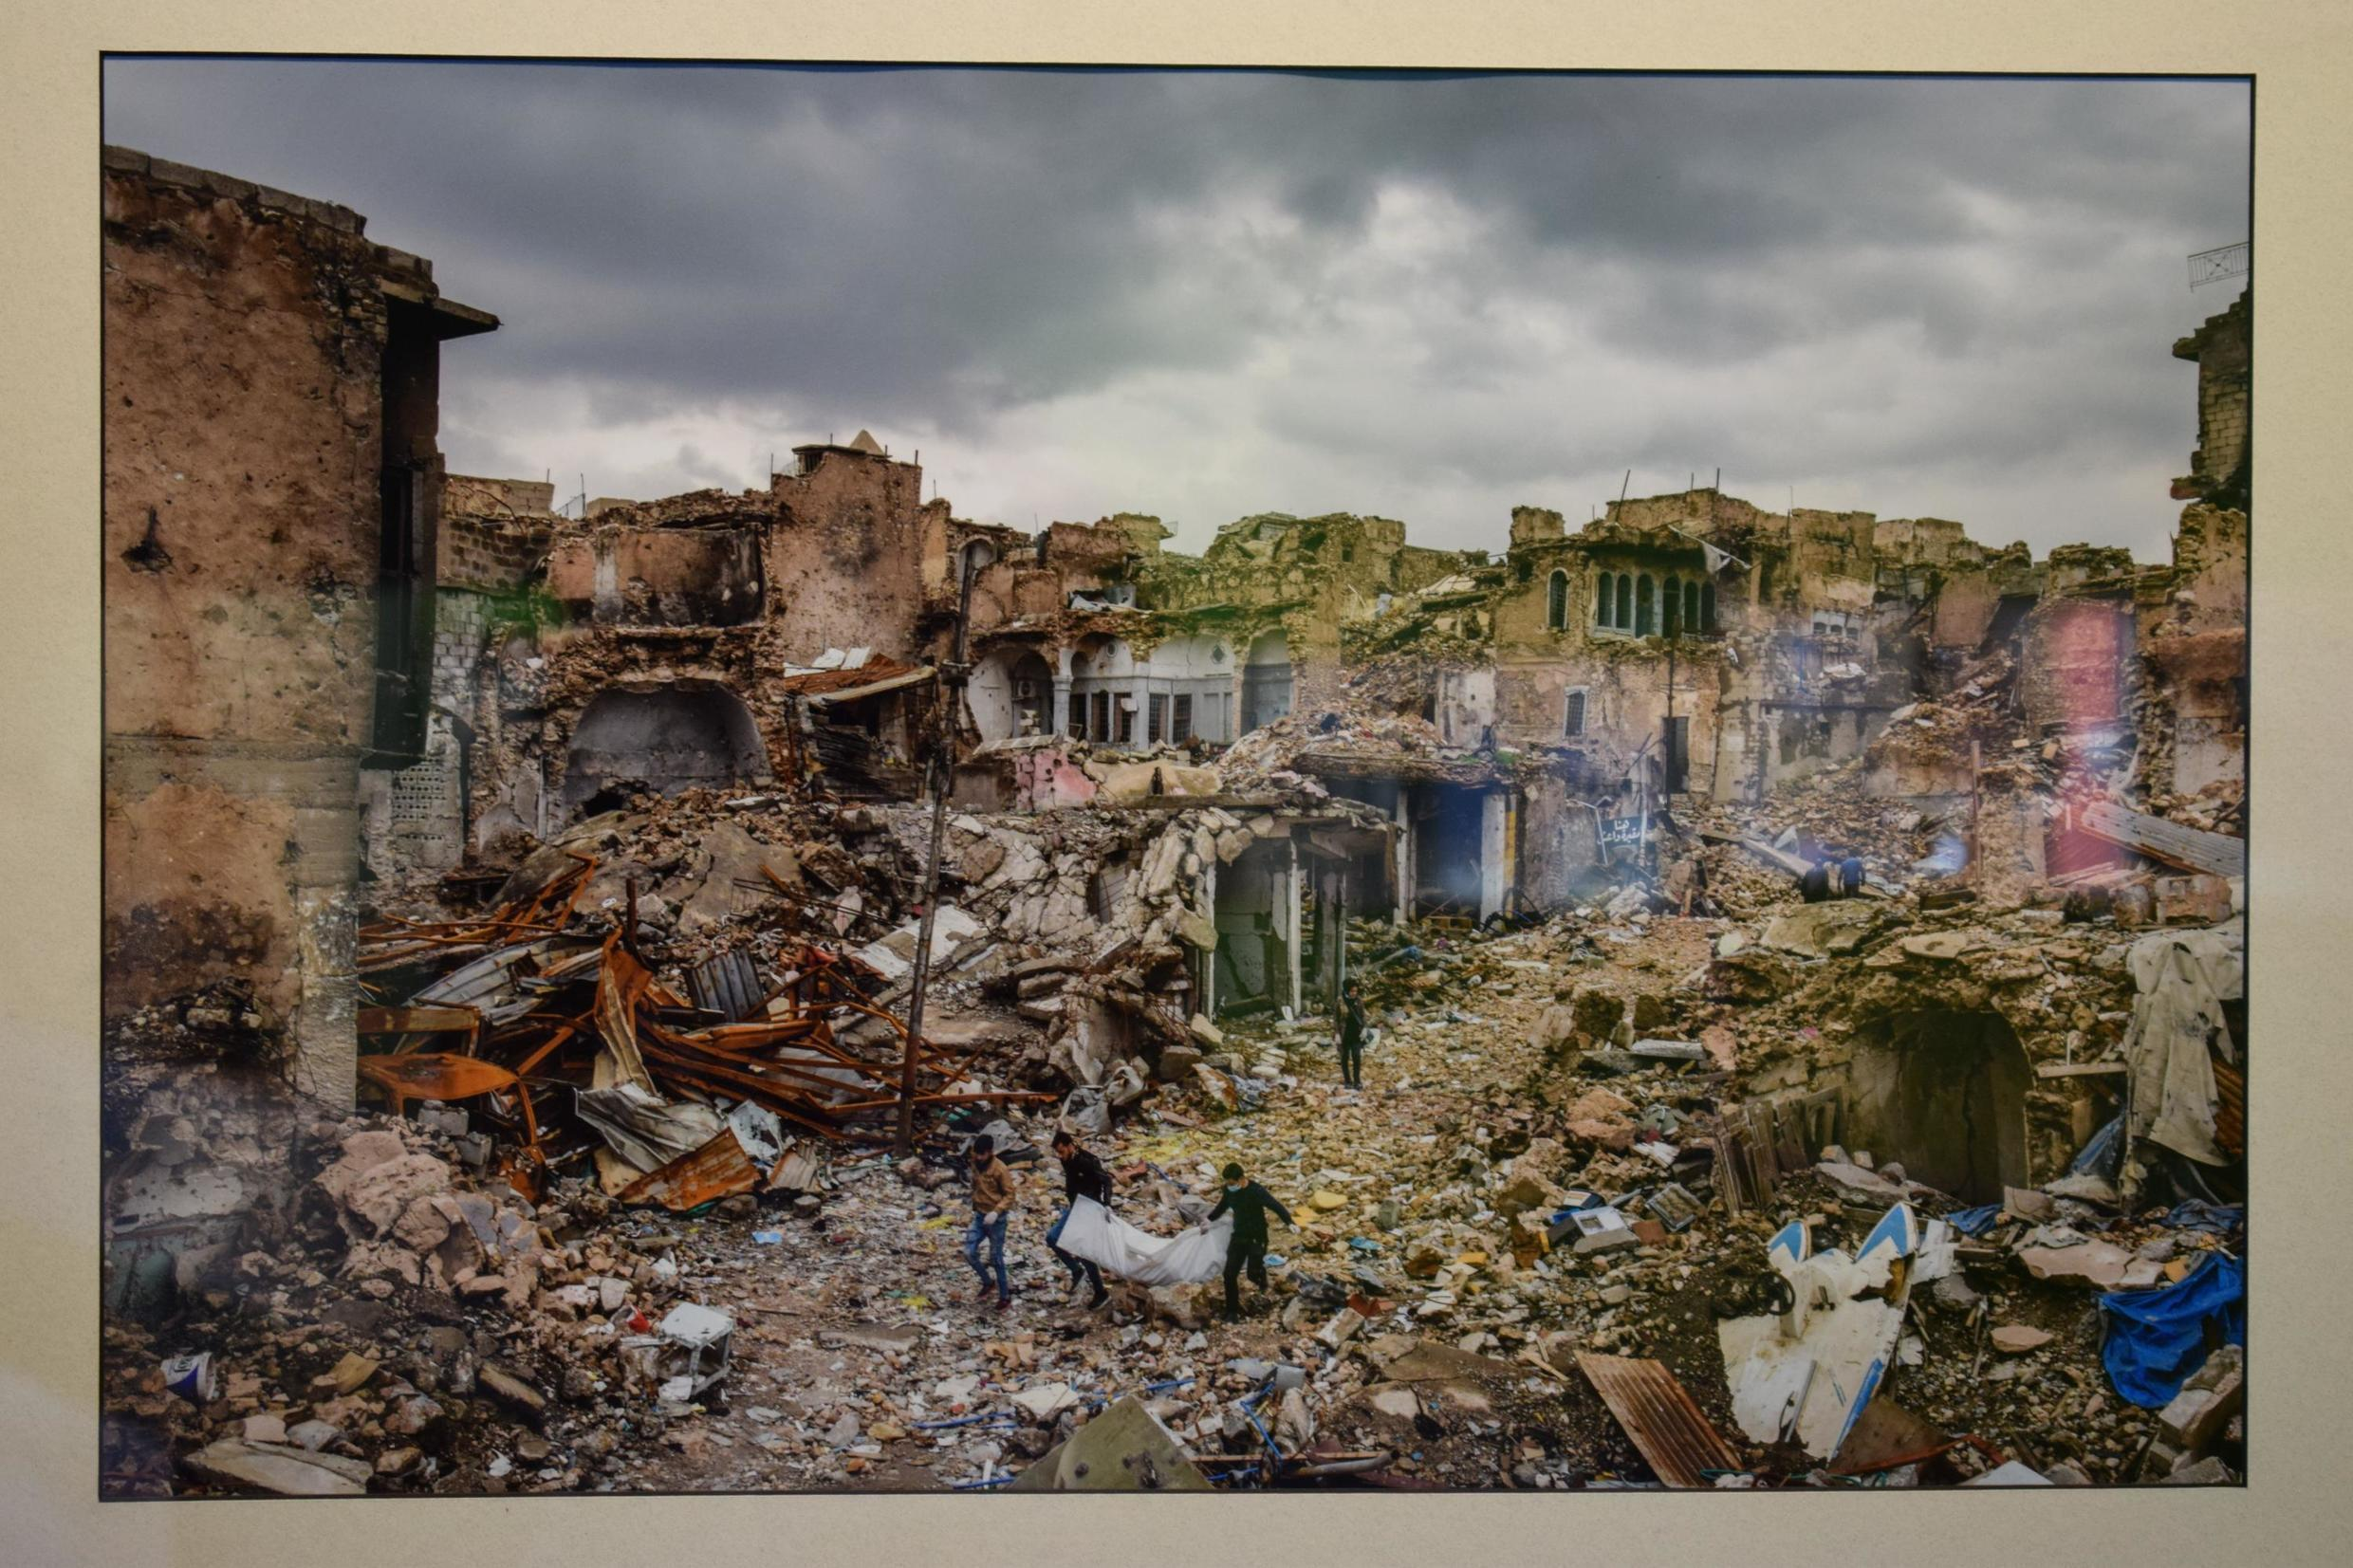 Photo taken by Ivor Prickett of a Mosul neighbourhood destroyed by the fighting